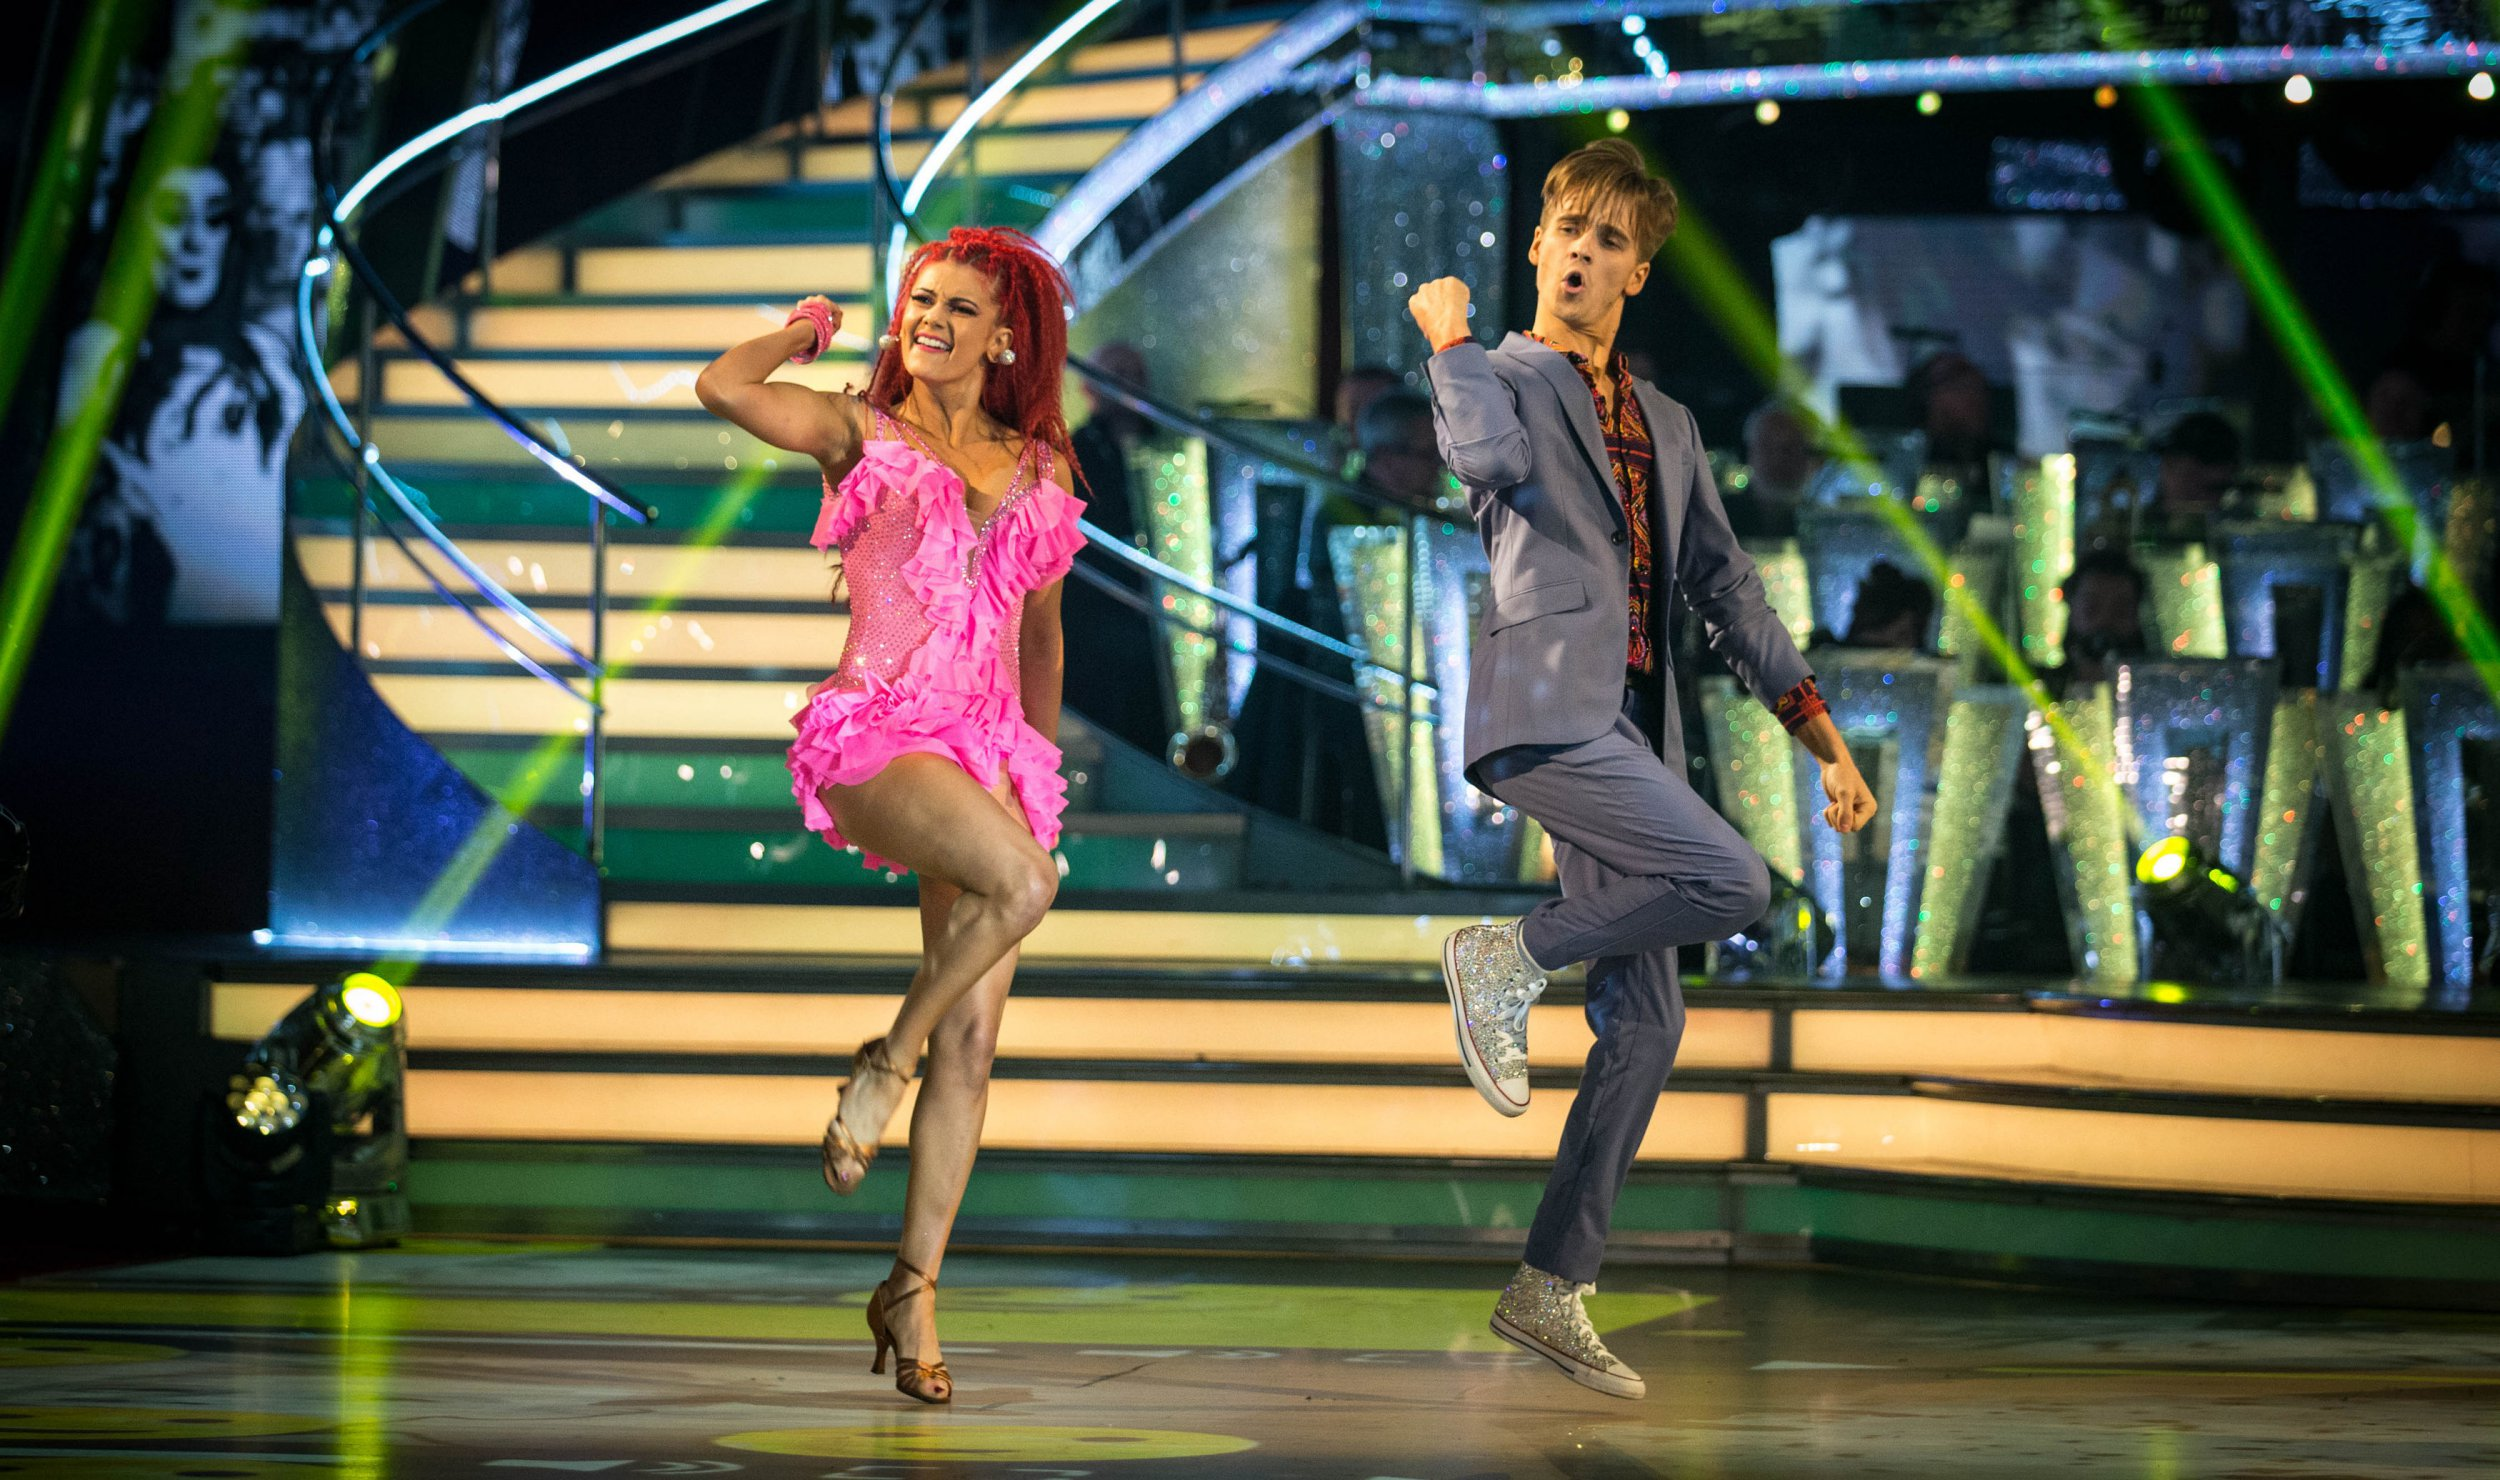 Embargoed to 2035 Saturday September 22 For use in UK, Ireland or Benelux countries only Undated BBC handout photo of Dianne Buswell and Joe Sugg during a dress rehearsal for Strictly Come Dancing. PRESS ASSOCIATION Photo. Issue date: Saturday September 22, 2018. See PA story SHOWBIZ Strictly. Photo credit should read: Guy Levy/BBC/PA Wire NOTE TO EDITORS: Not for use more than 21 days after issue. You may use this picture without charge only for the purpose of publicising or reporting on current BBC programming, personnel or other BBC output or activity within 21 days of issue. Any use after that time MUST be cleared through BBC Picture Publicity. Please credit the image to the BBC and any named photographer or independent programme maker, as described in the caption.